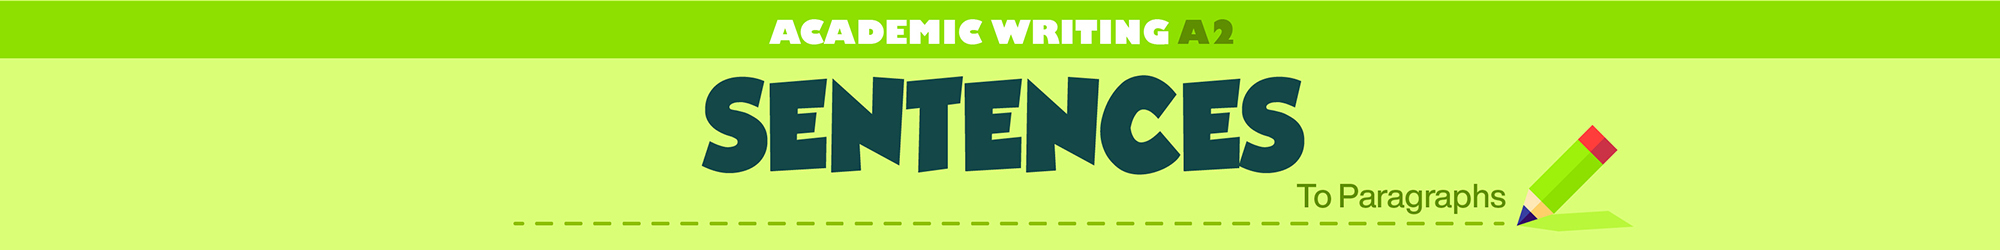 Academic Writing A2 (From Sentences to Paragraphs) banner